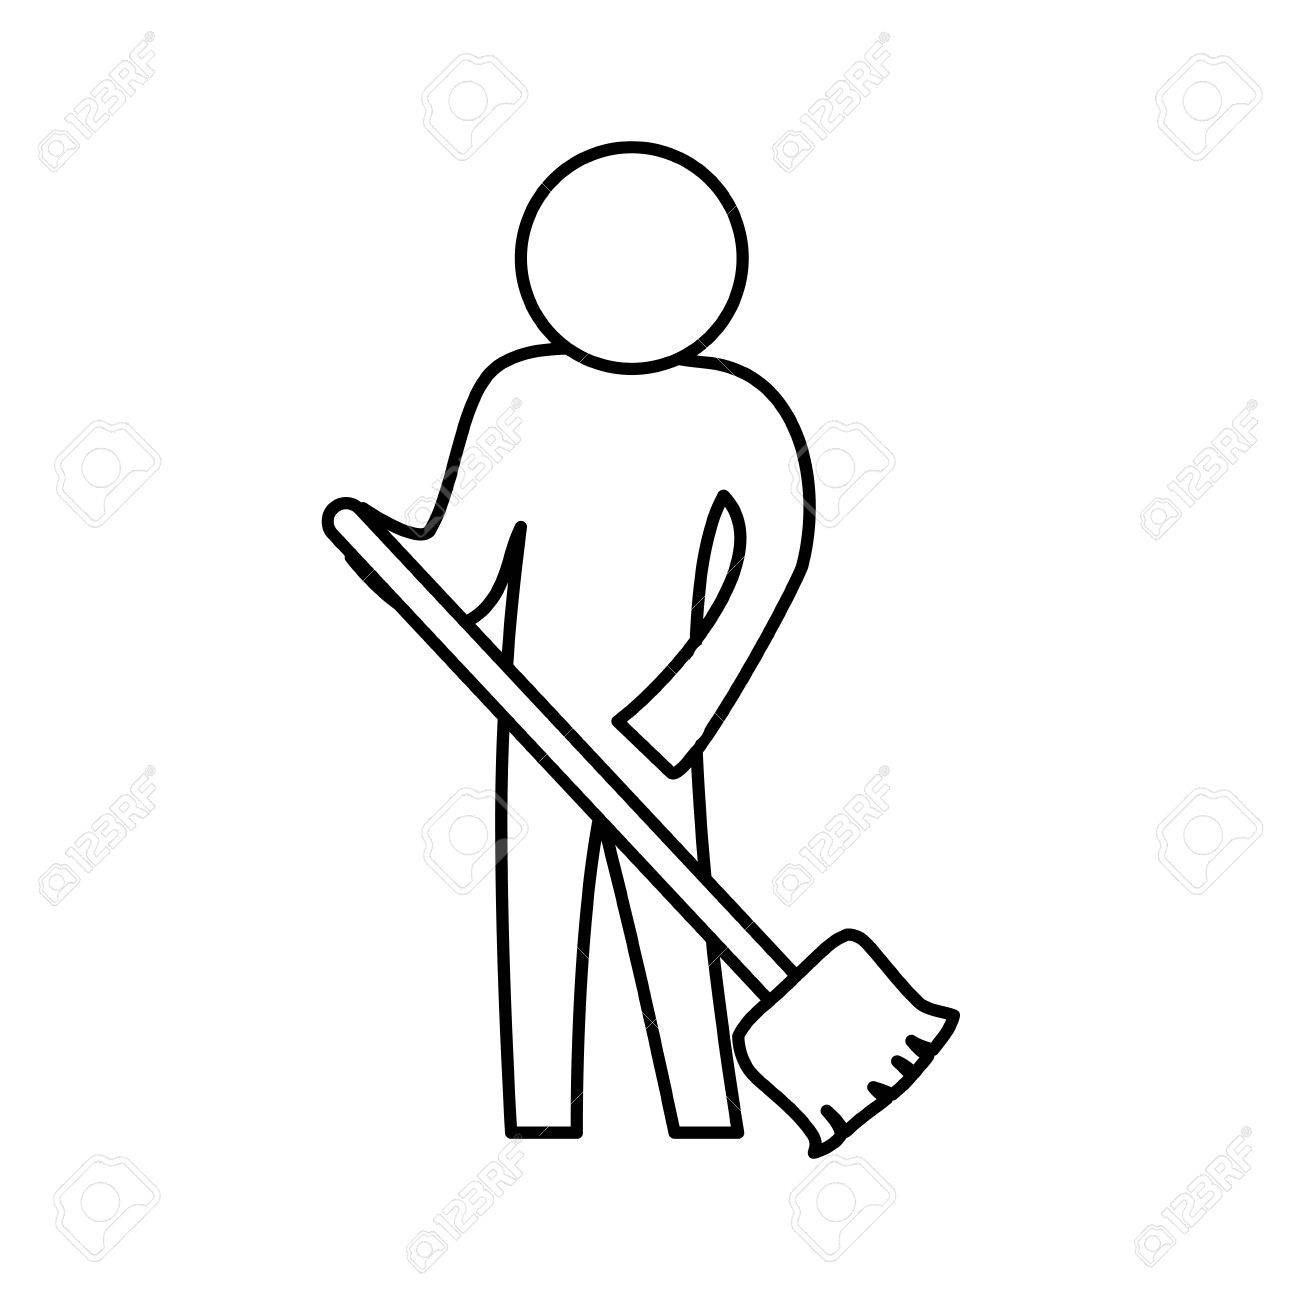 sweeping the floor icon vector illustration graphic design royalty free cliparts vectors and stock illustration image 76492131 sweeping the floor icon vector illustration graphic design